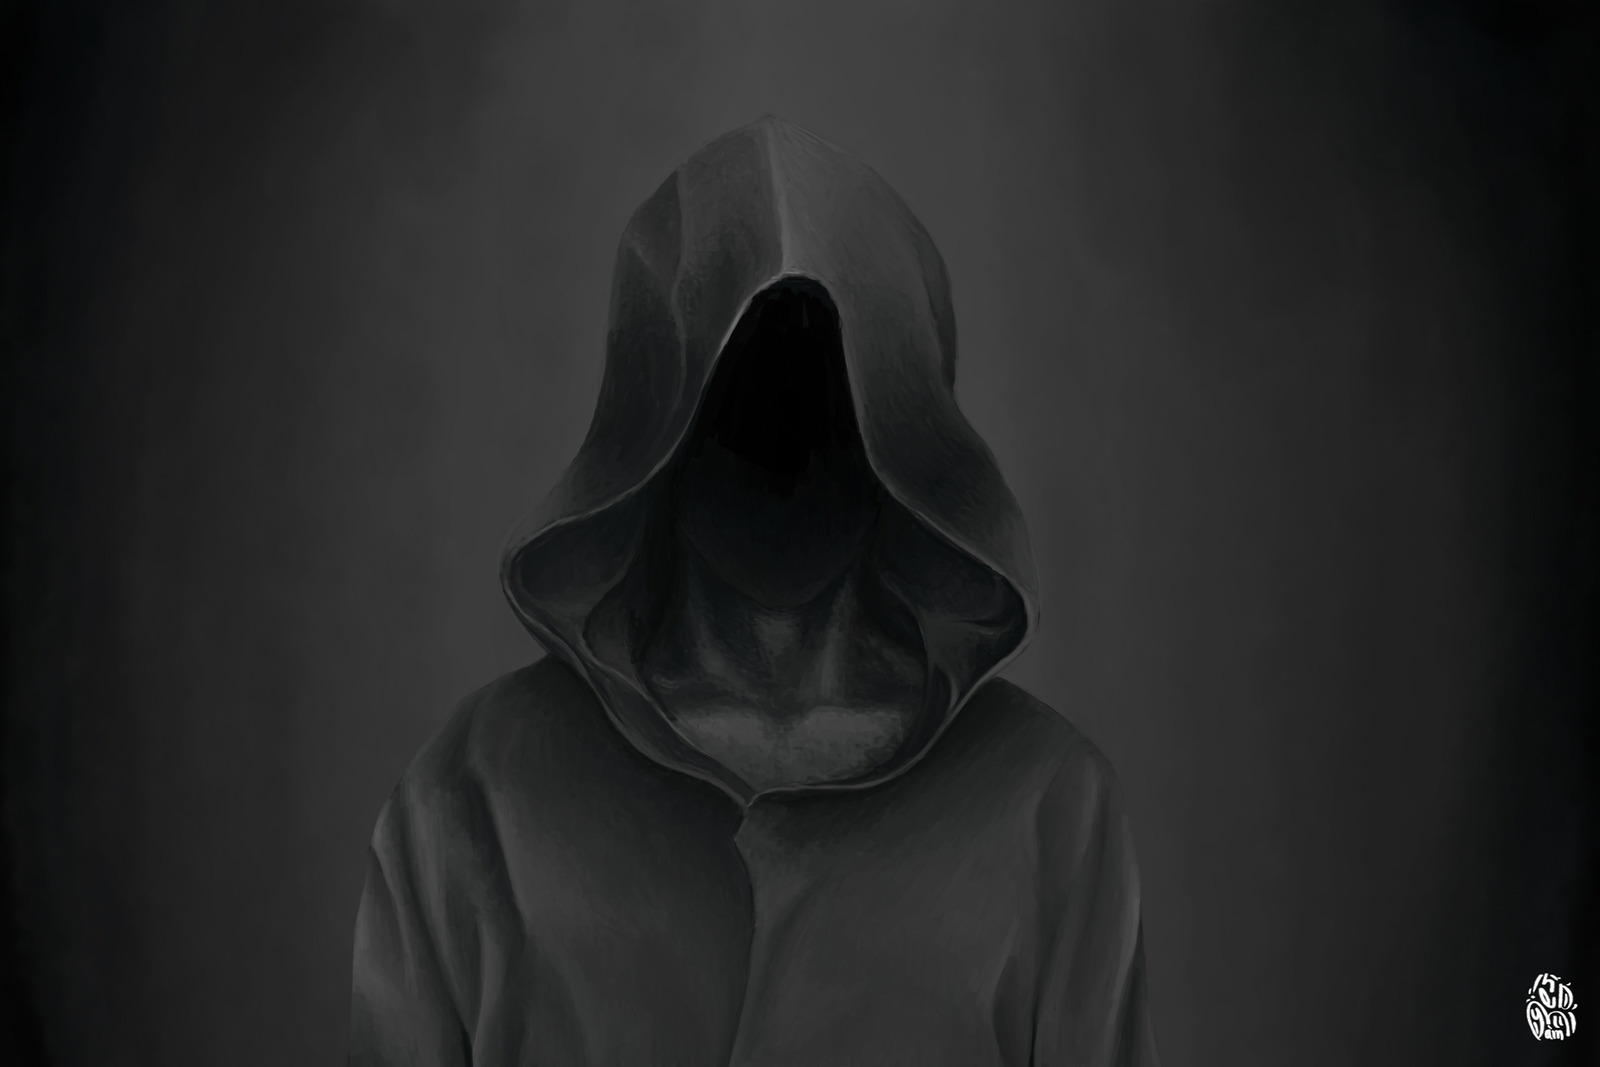 Scary Hooded Figure Wallpaper - WallsKid